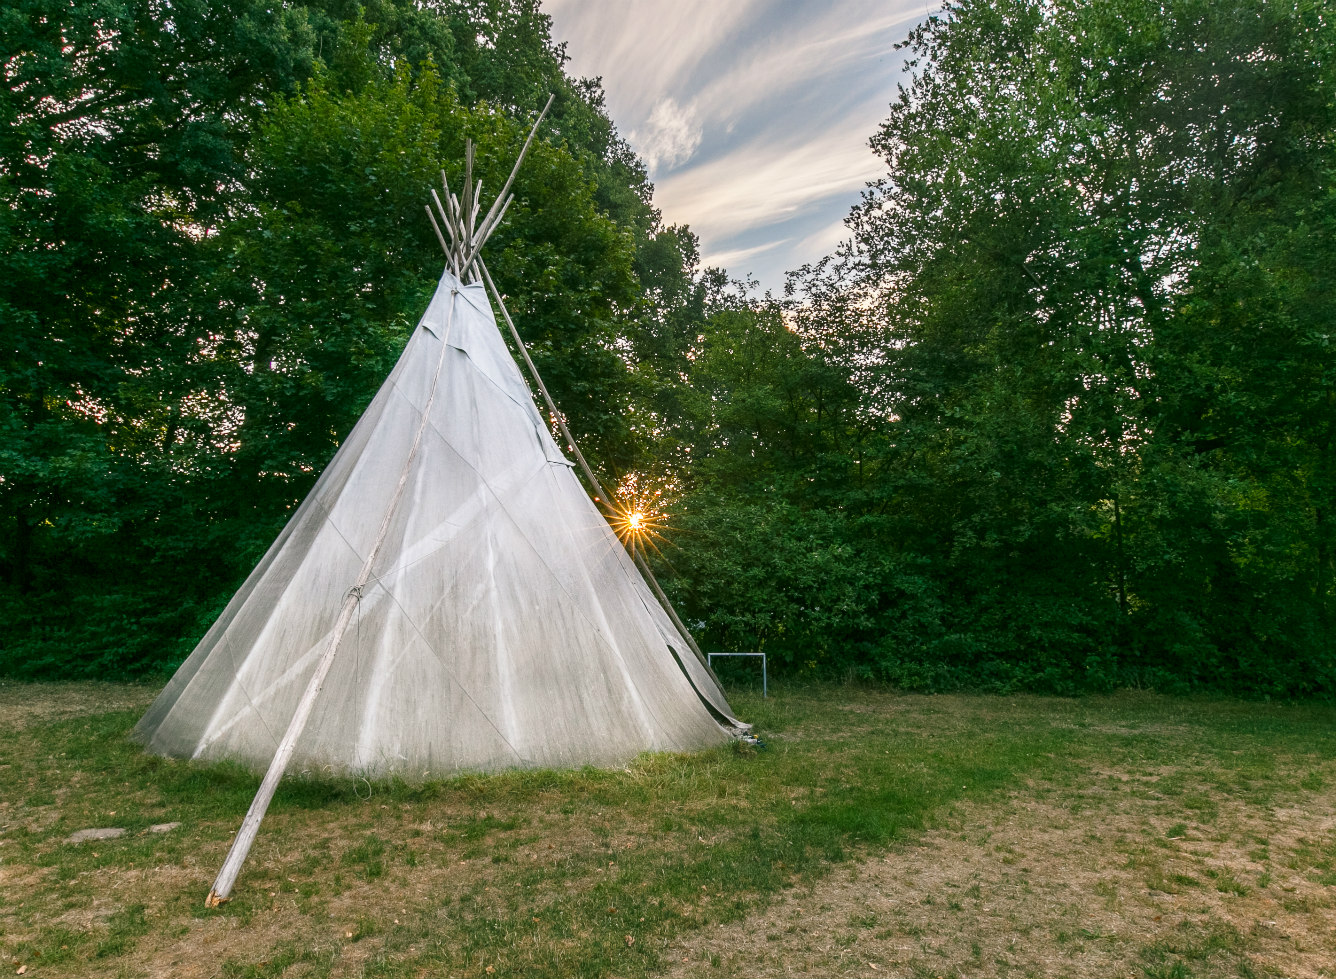 The great tipi